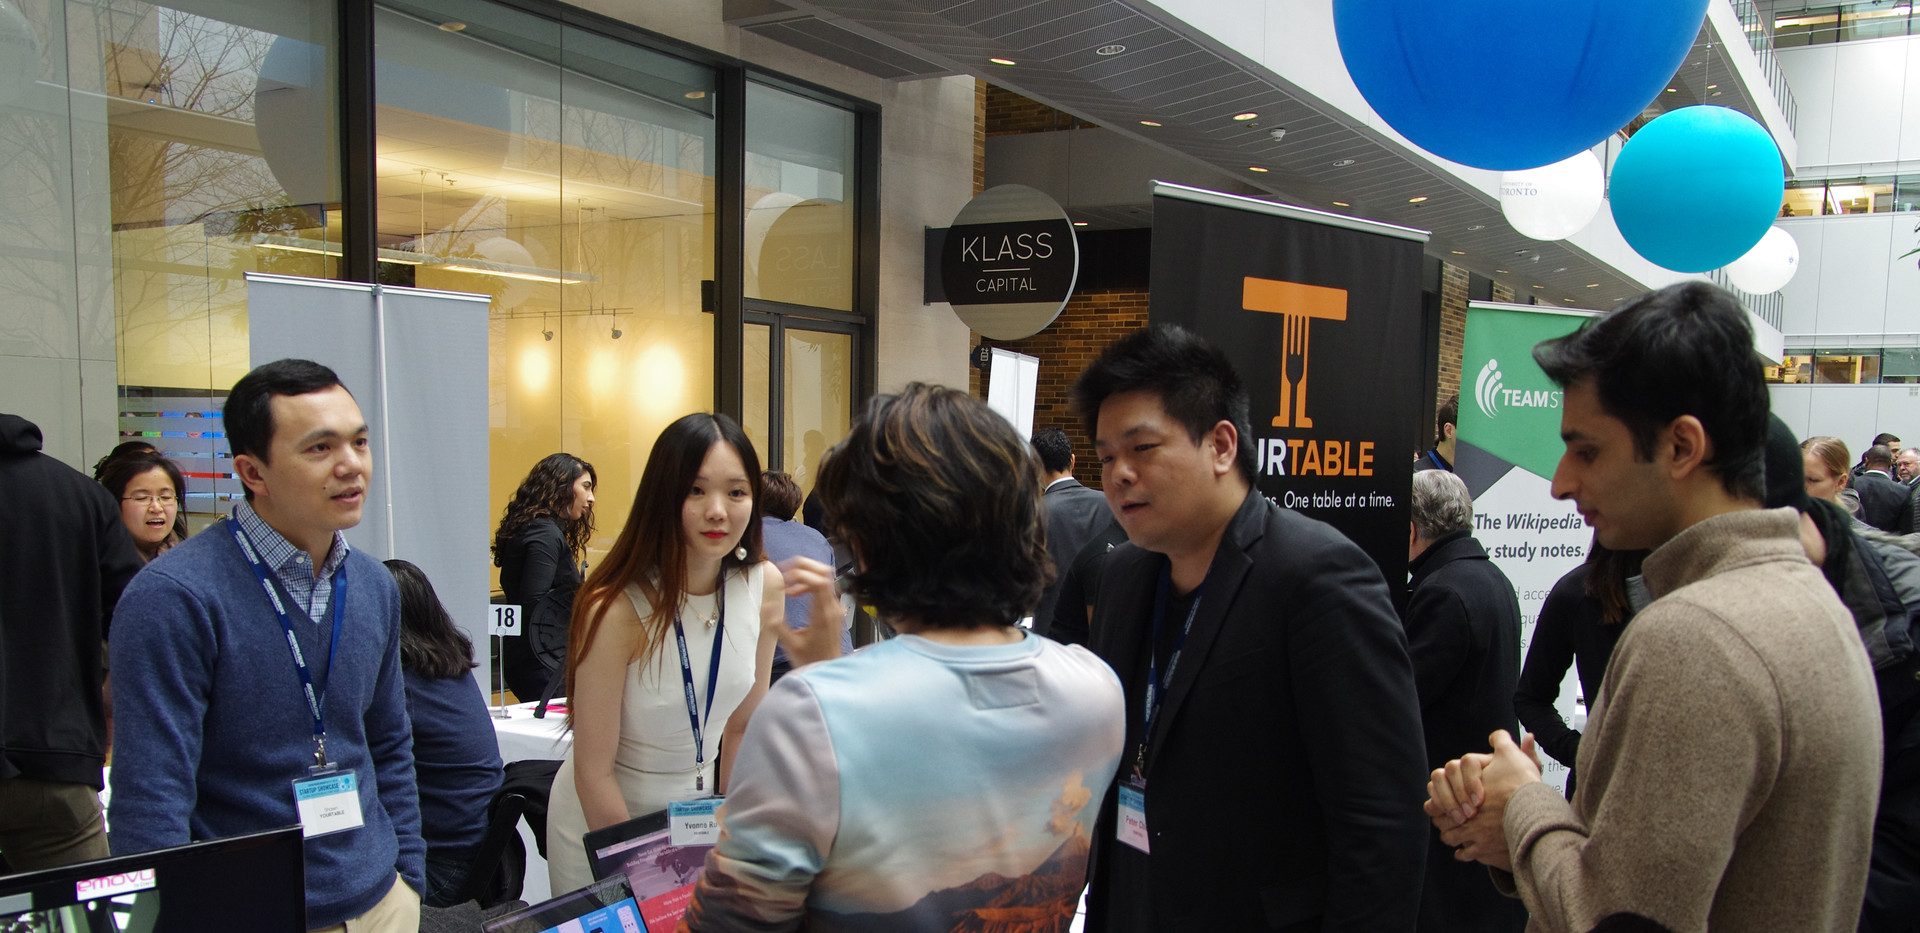 YourTable at UofT x MaRS